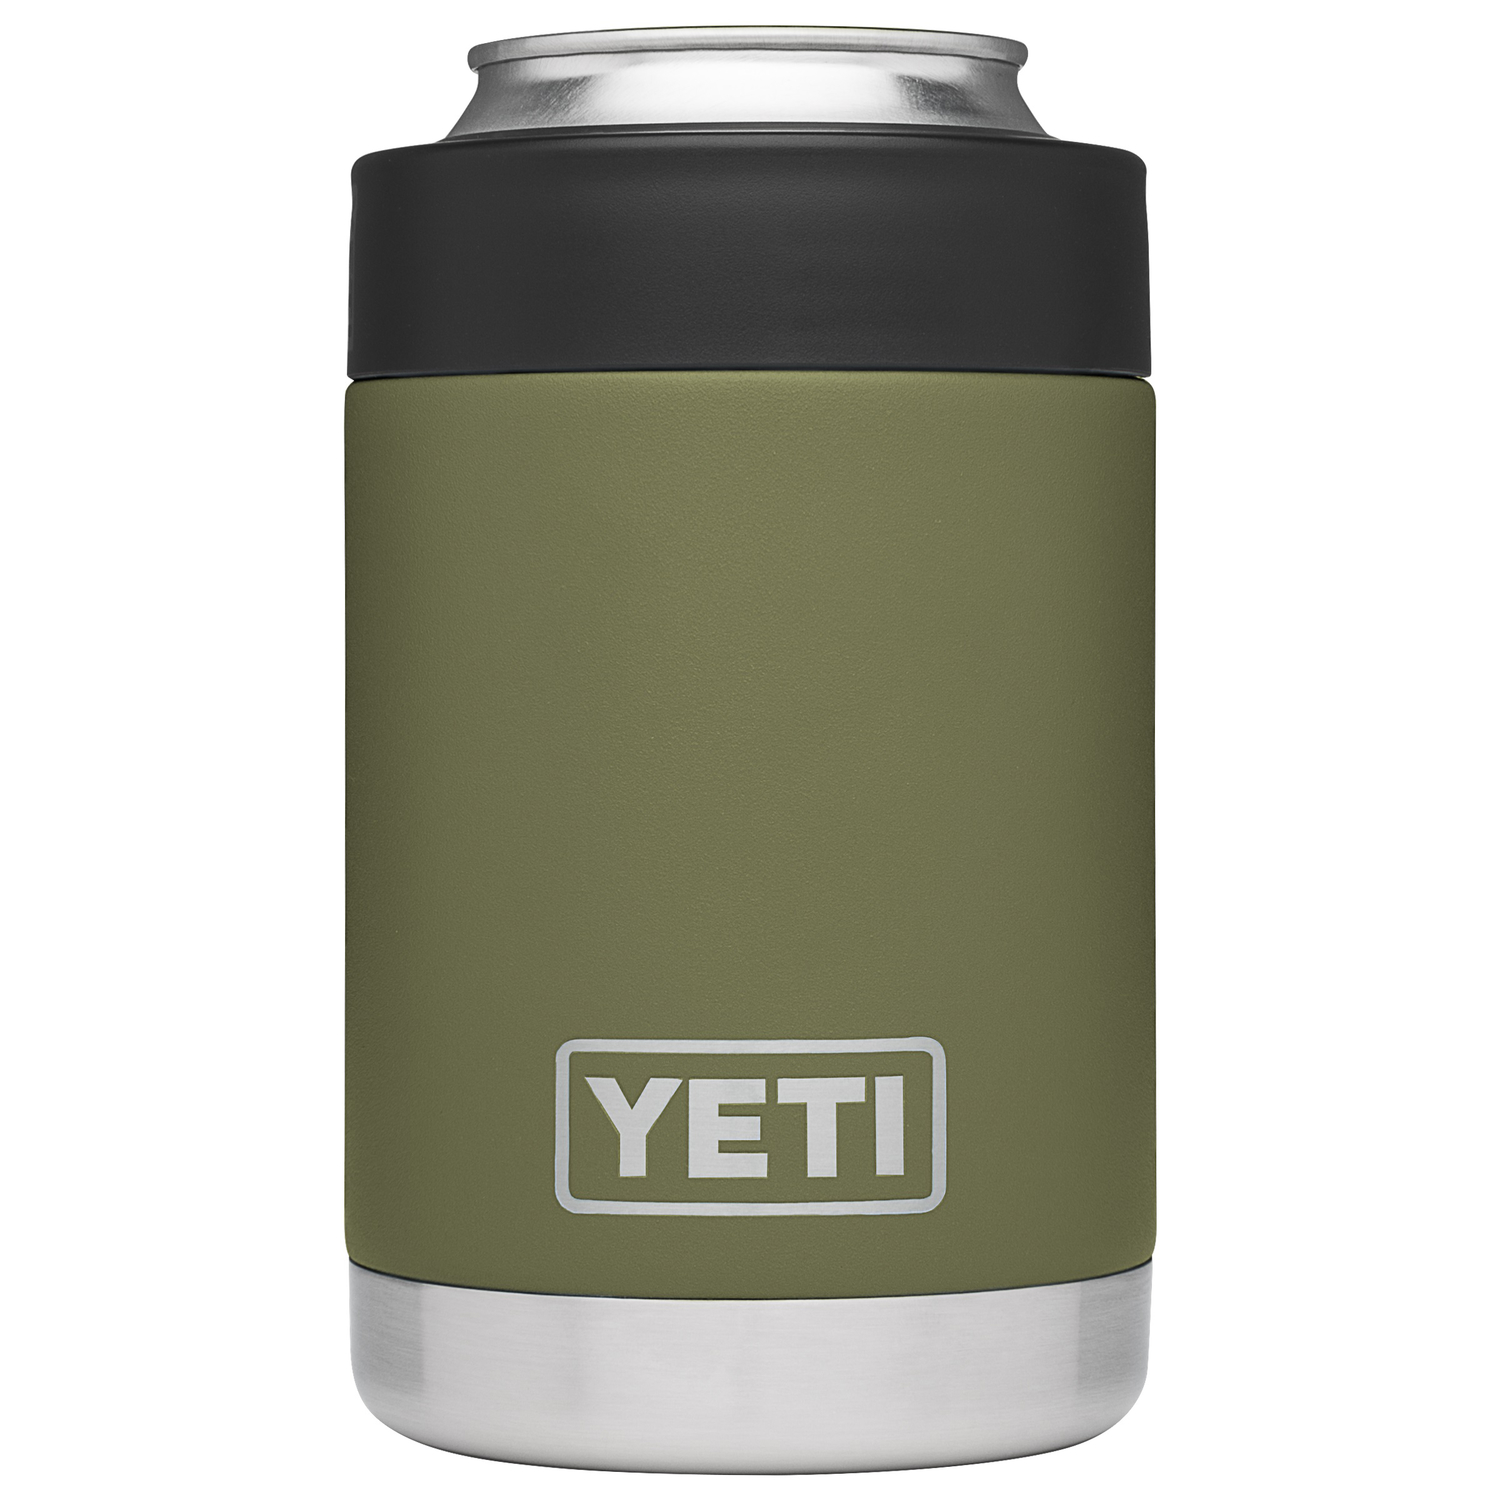 YETI  Rambler Colster  Stainless Steel  Beverage Holder  12  BPA Free Olive Green